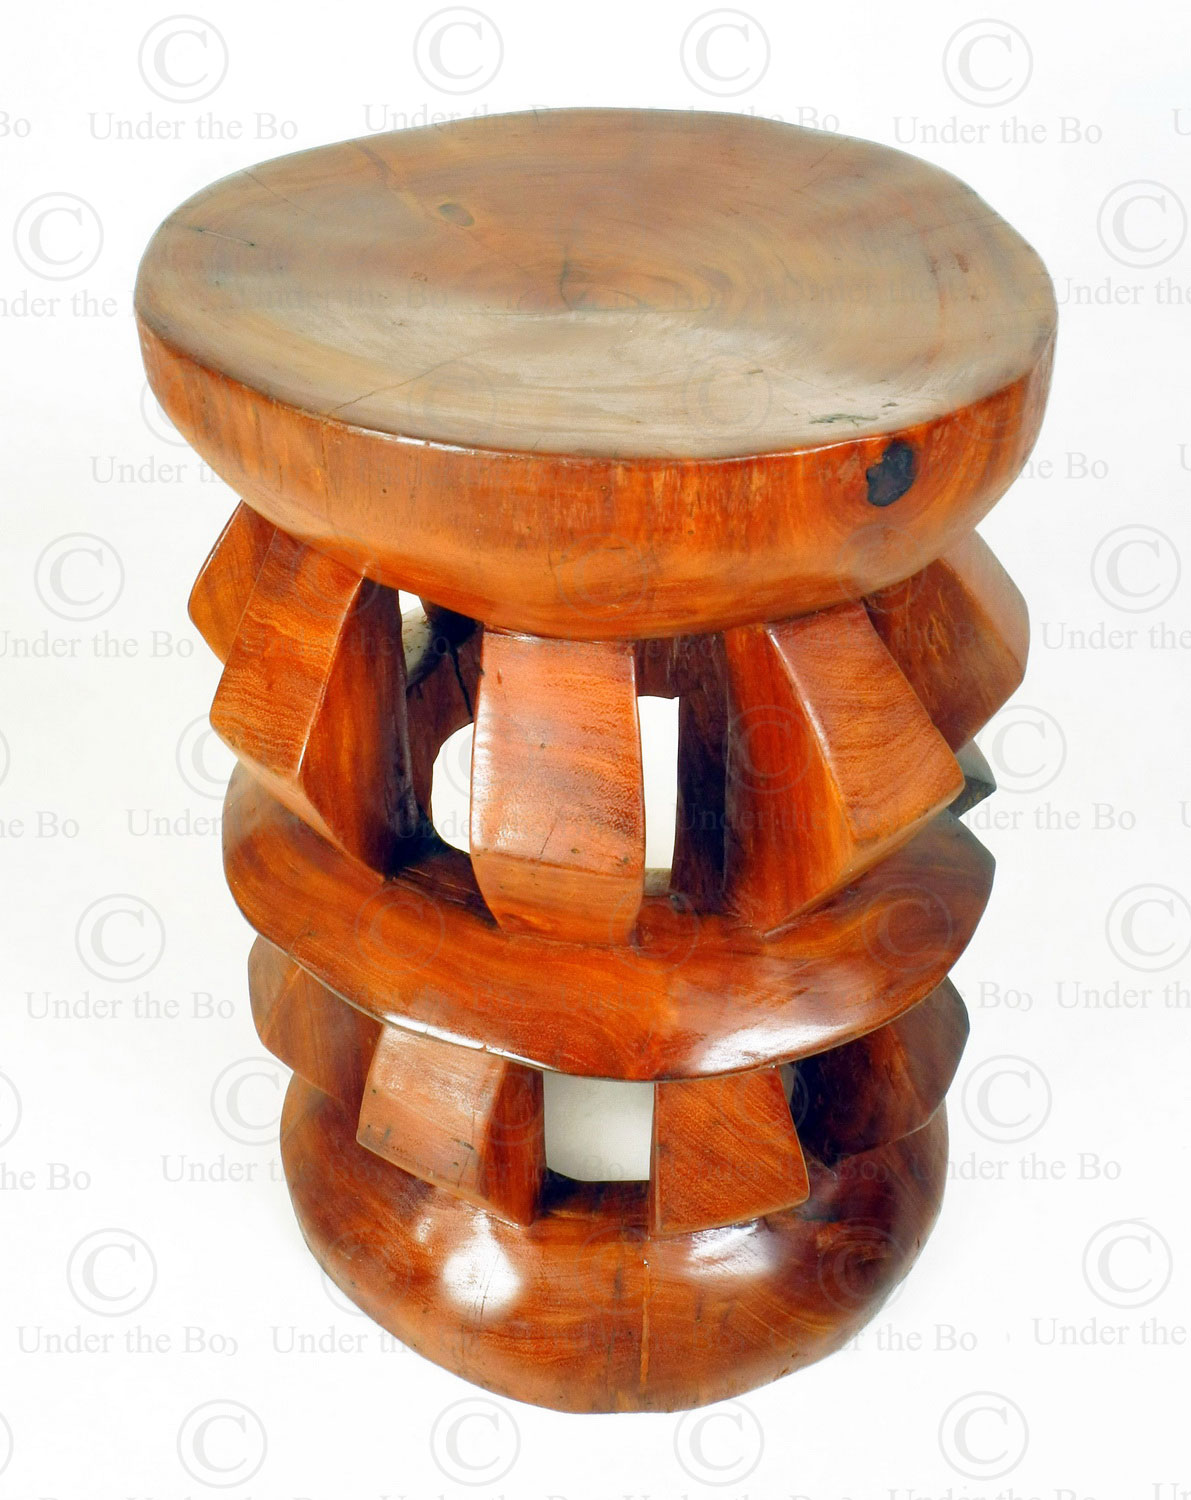 Cameroon style stool 18FV-S7. Made at Under the Bo workshop.